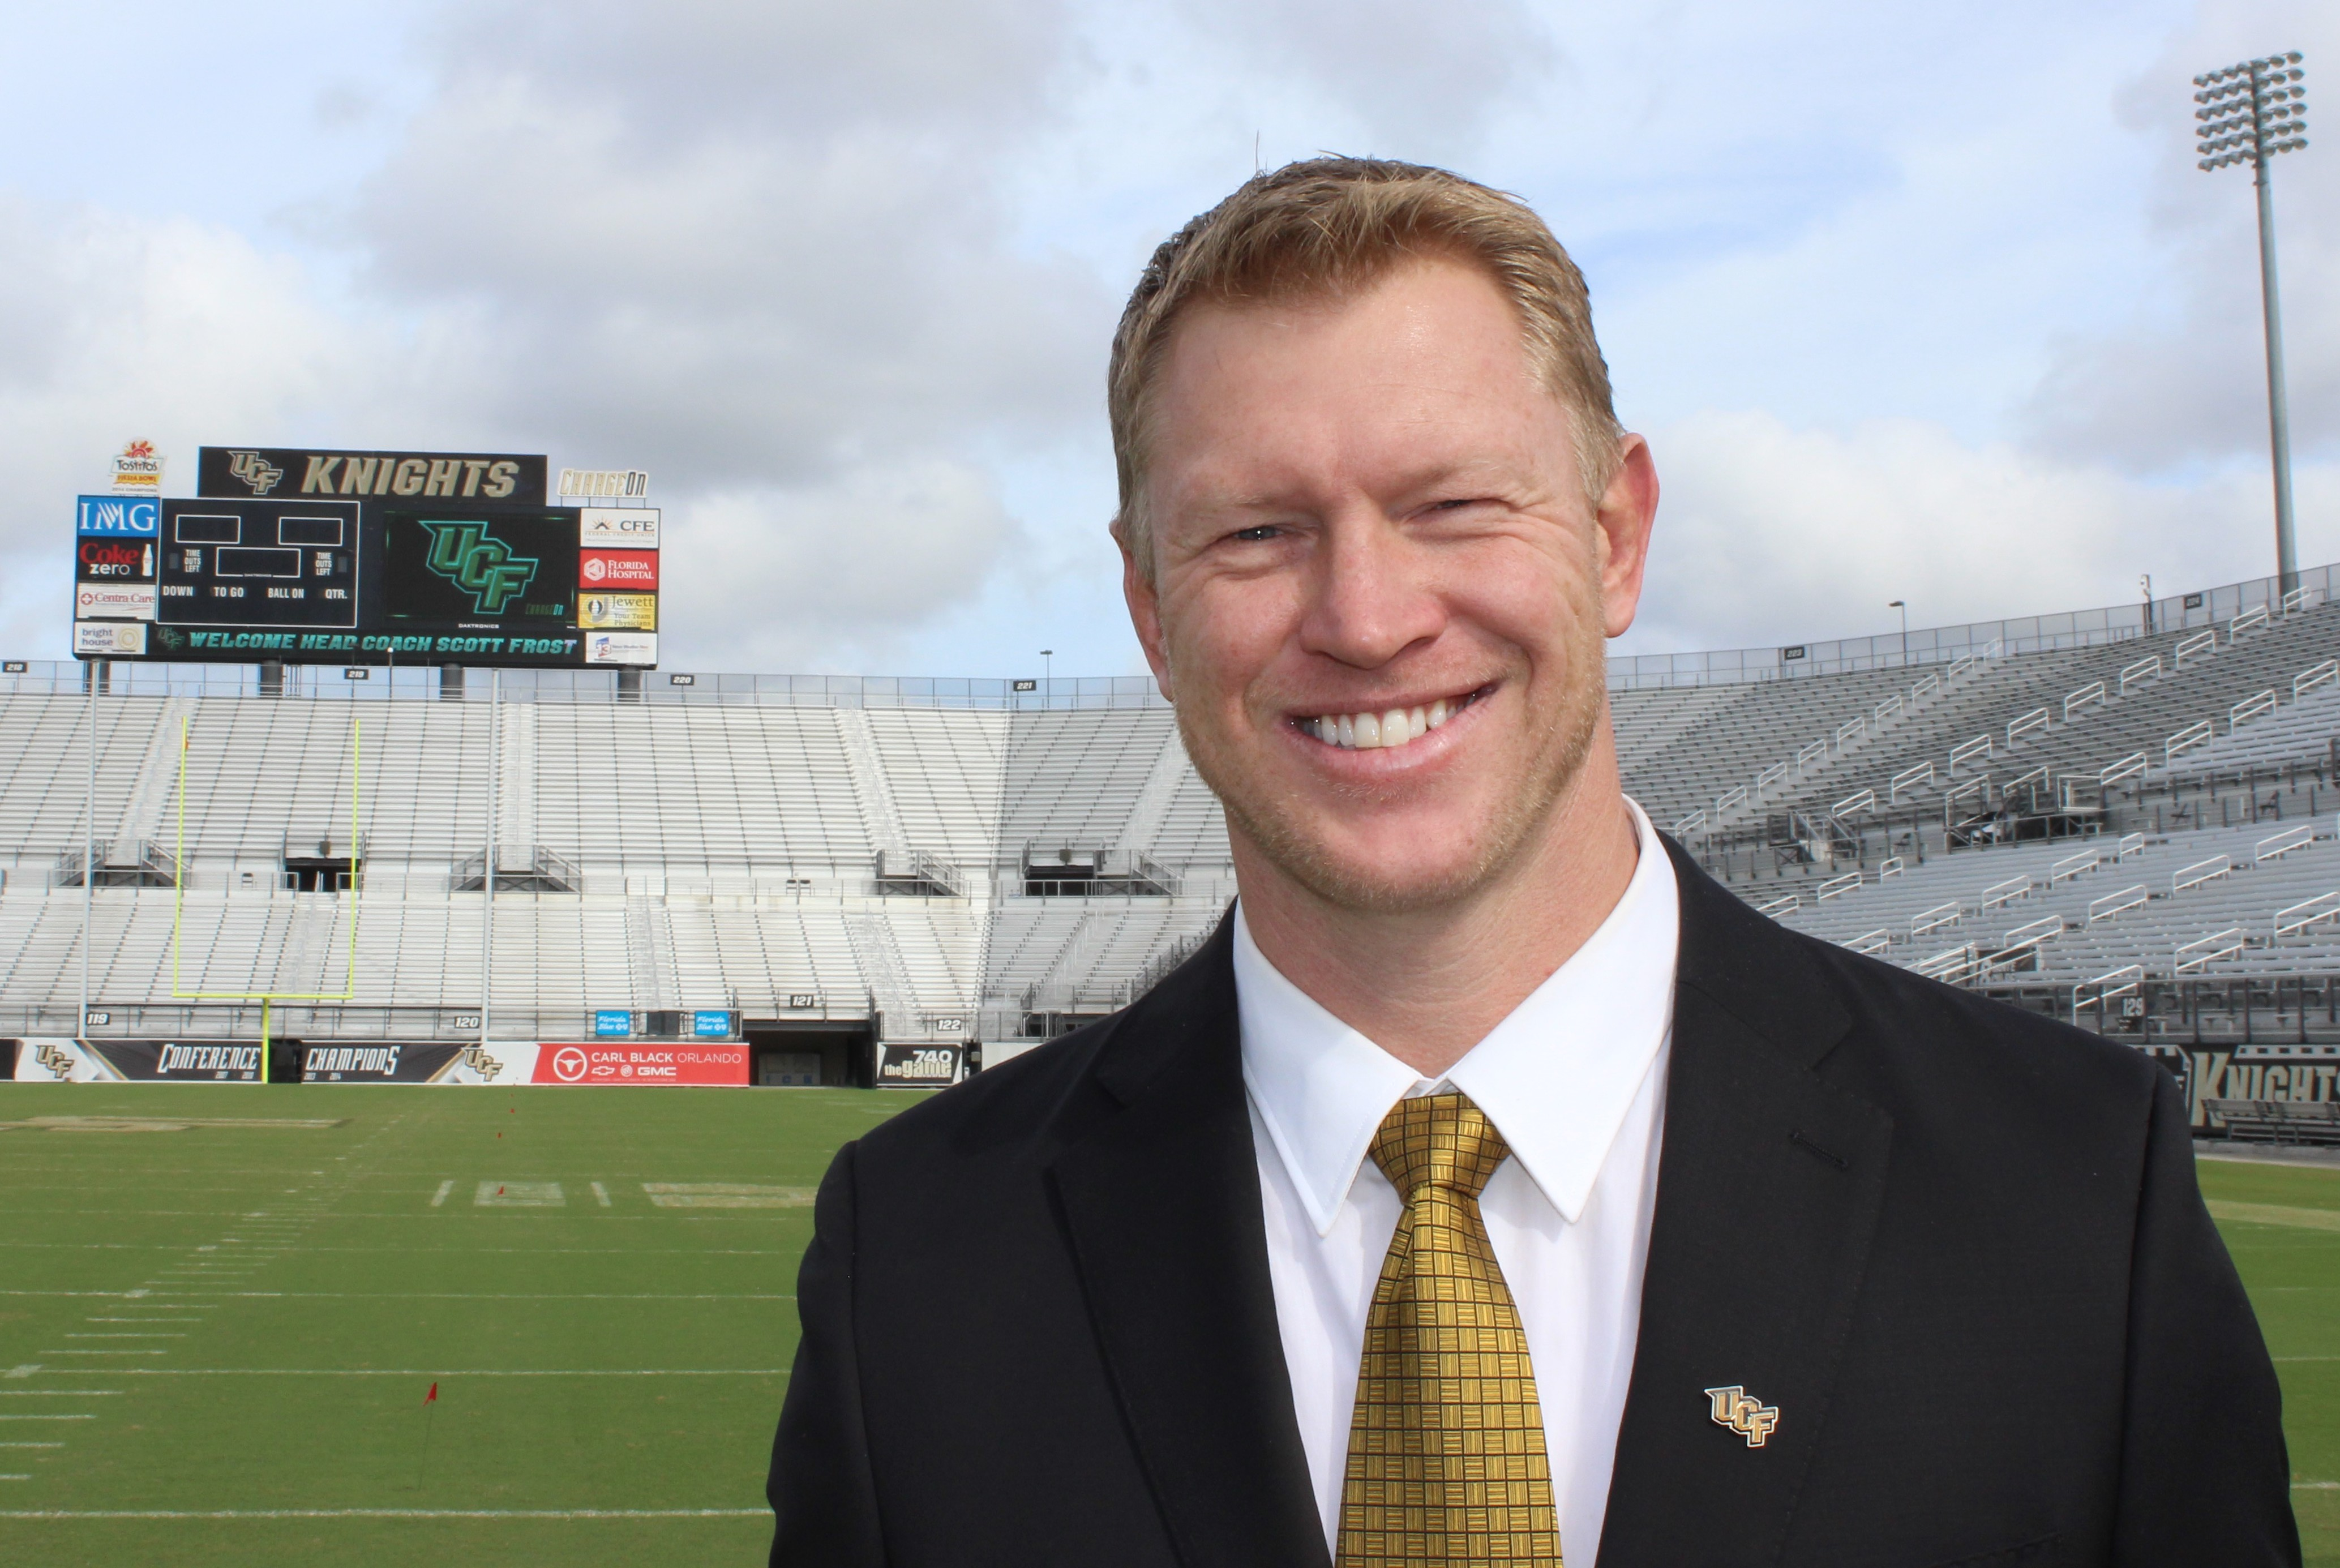 UCF head football coach Scott Frost poses for a photo at Bright House Networks Stadium following his introduction on December 2, 2015. (Photo: Jeff Sharon/BlackandGoldBanneret.com)